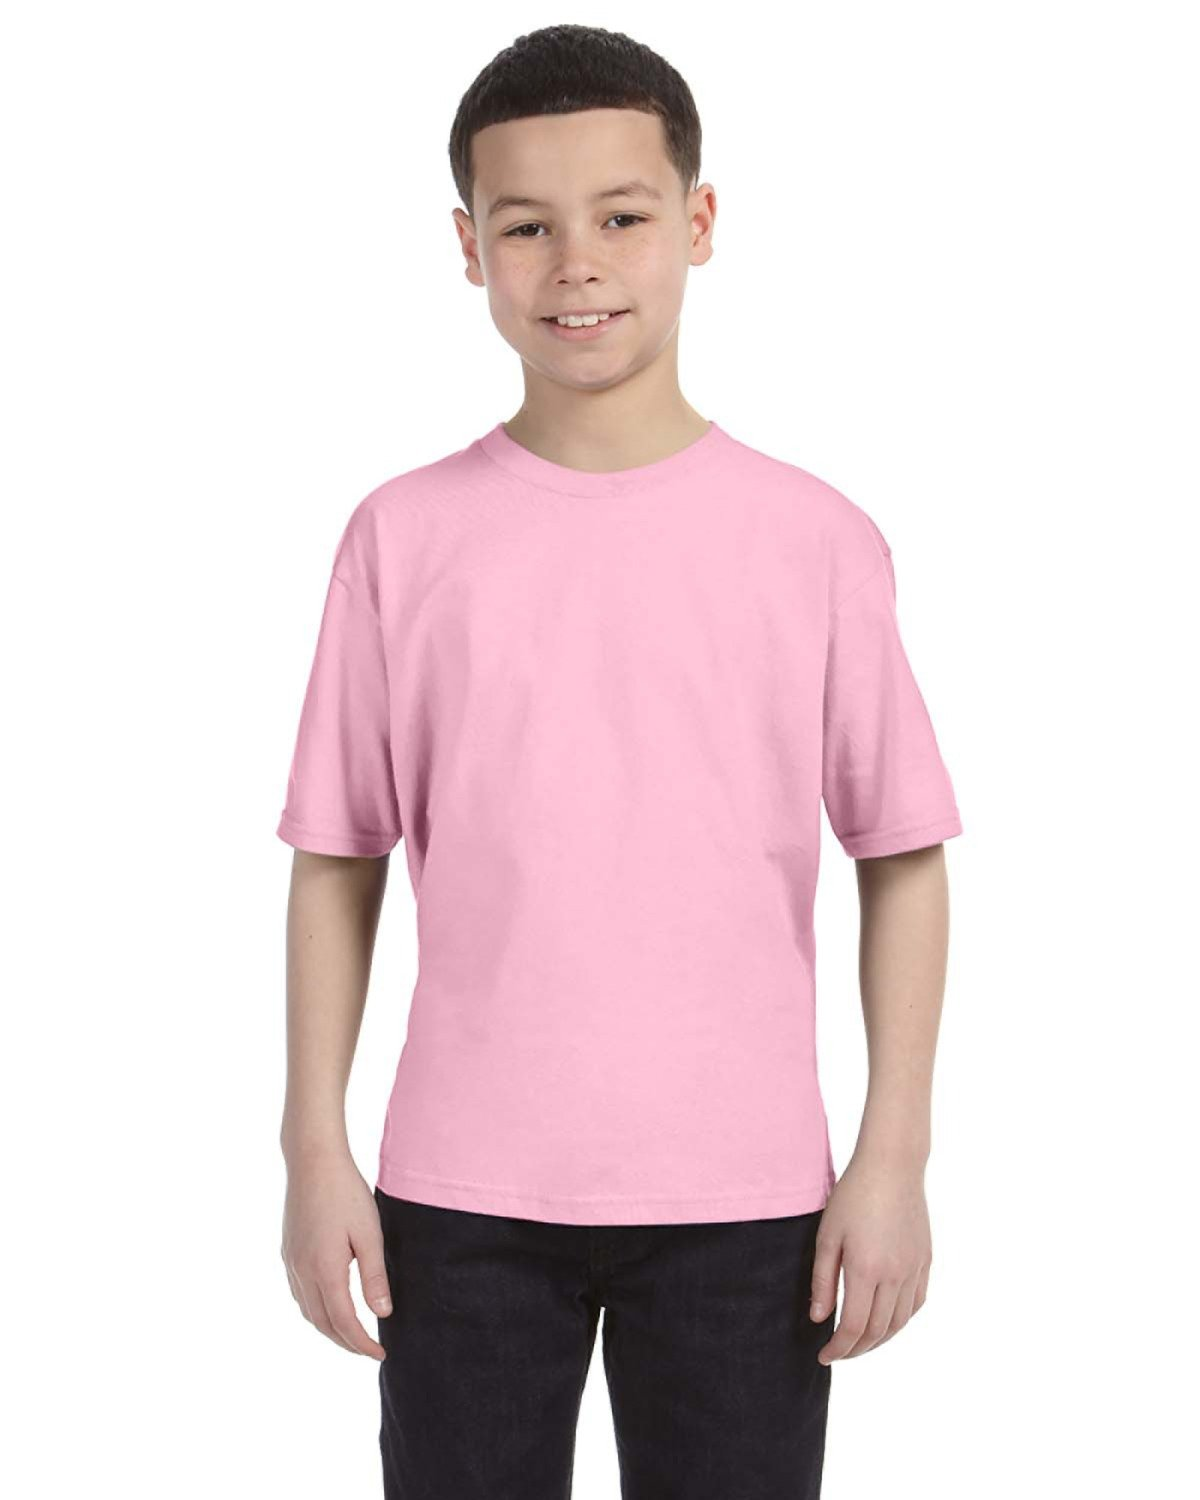 Anvil Youth Lightweight T-Shirt CHARITY PINK